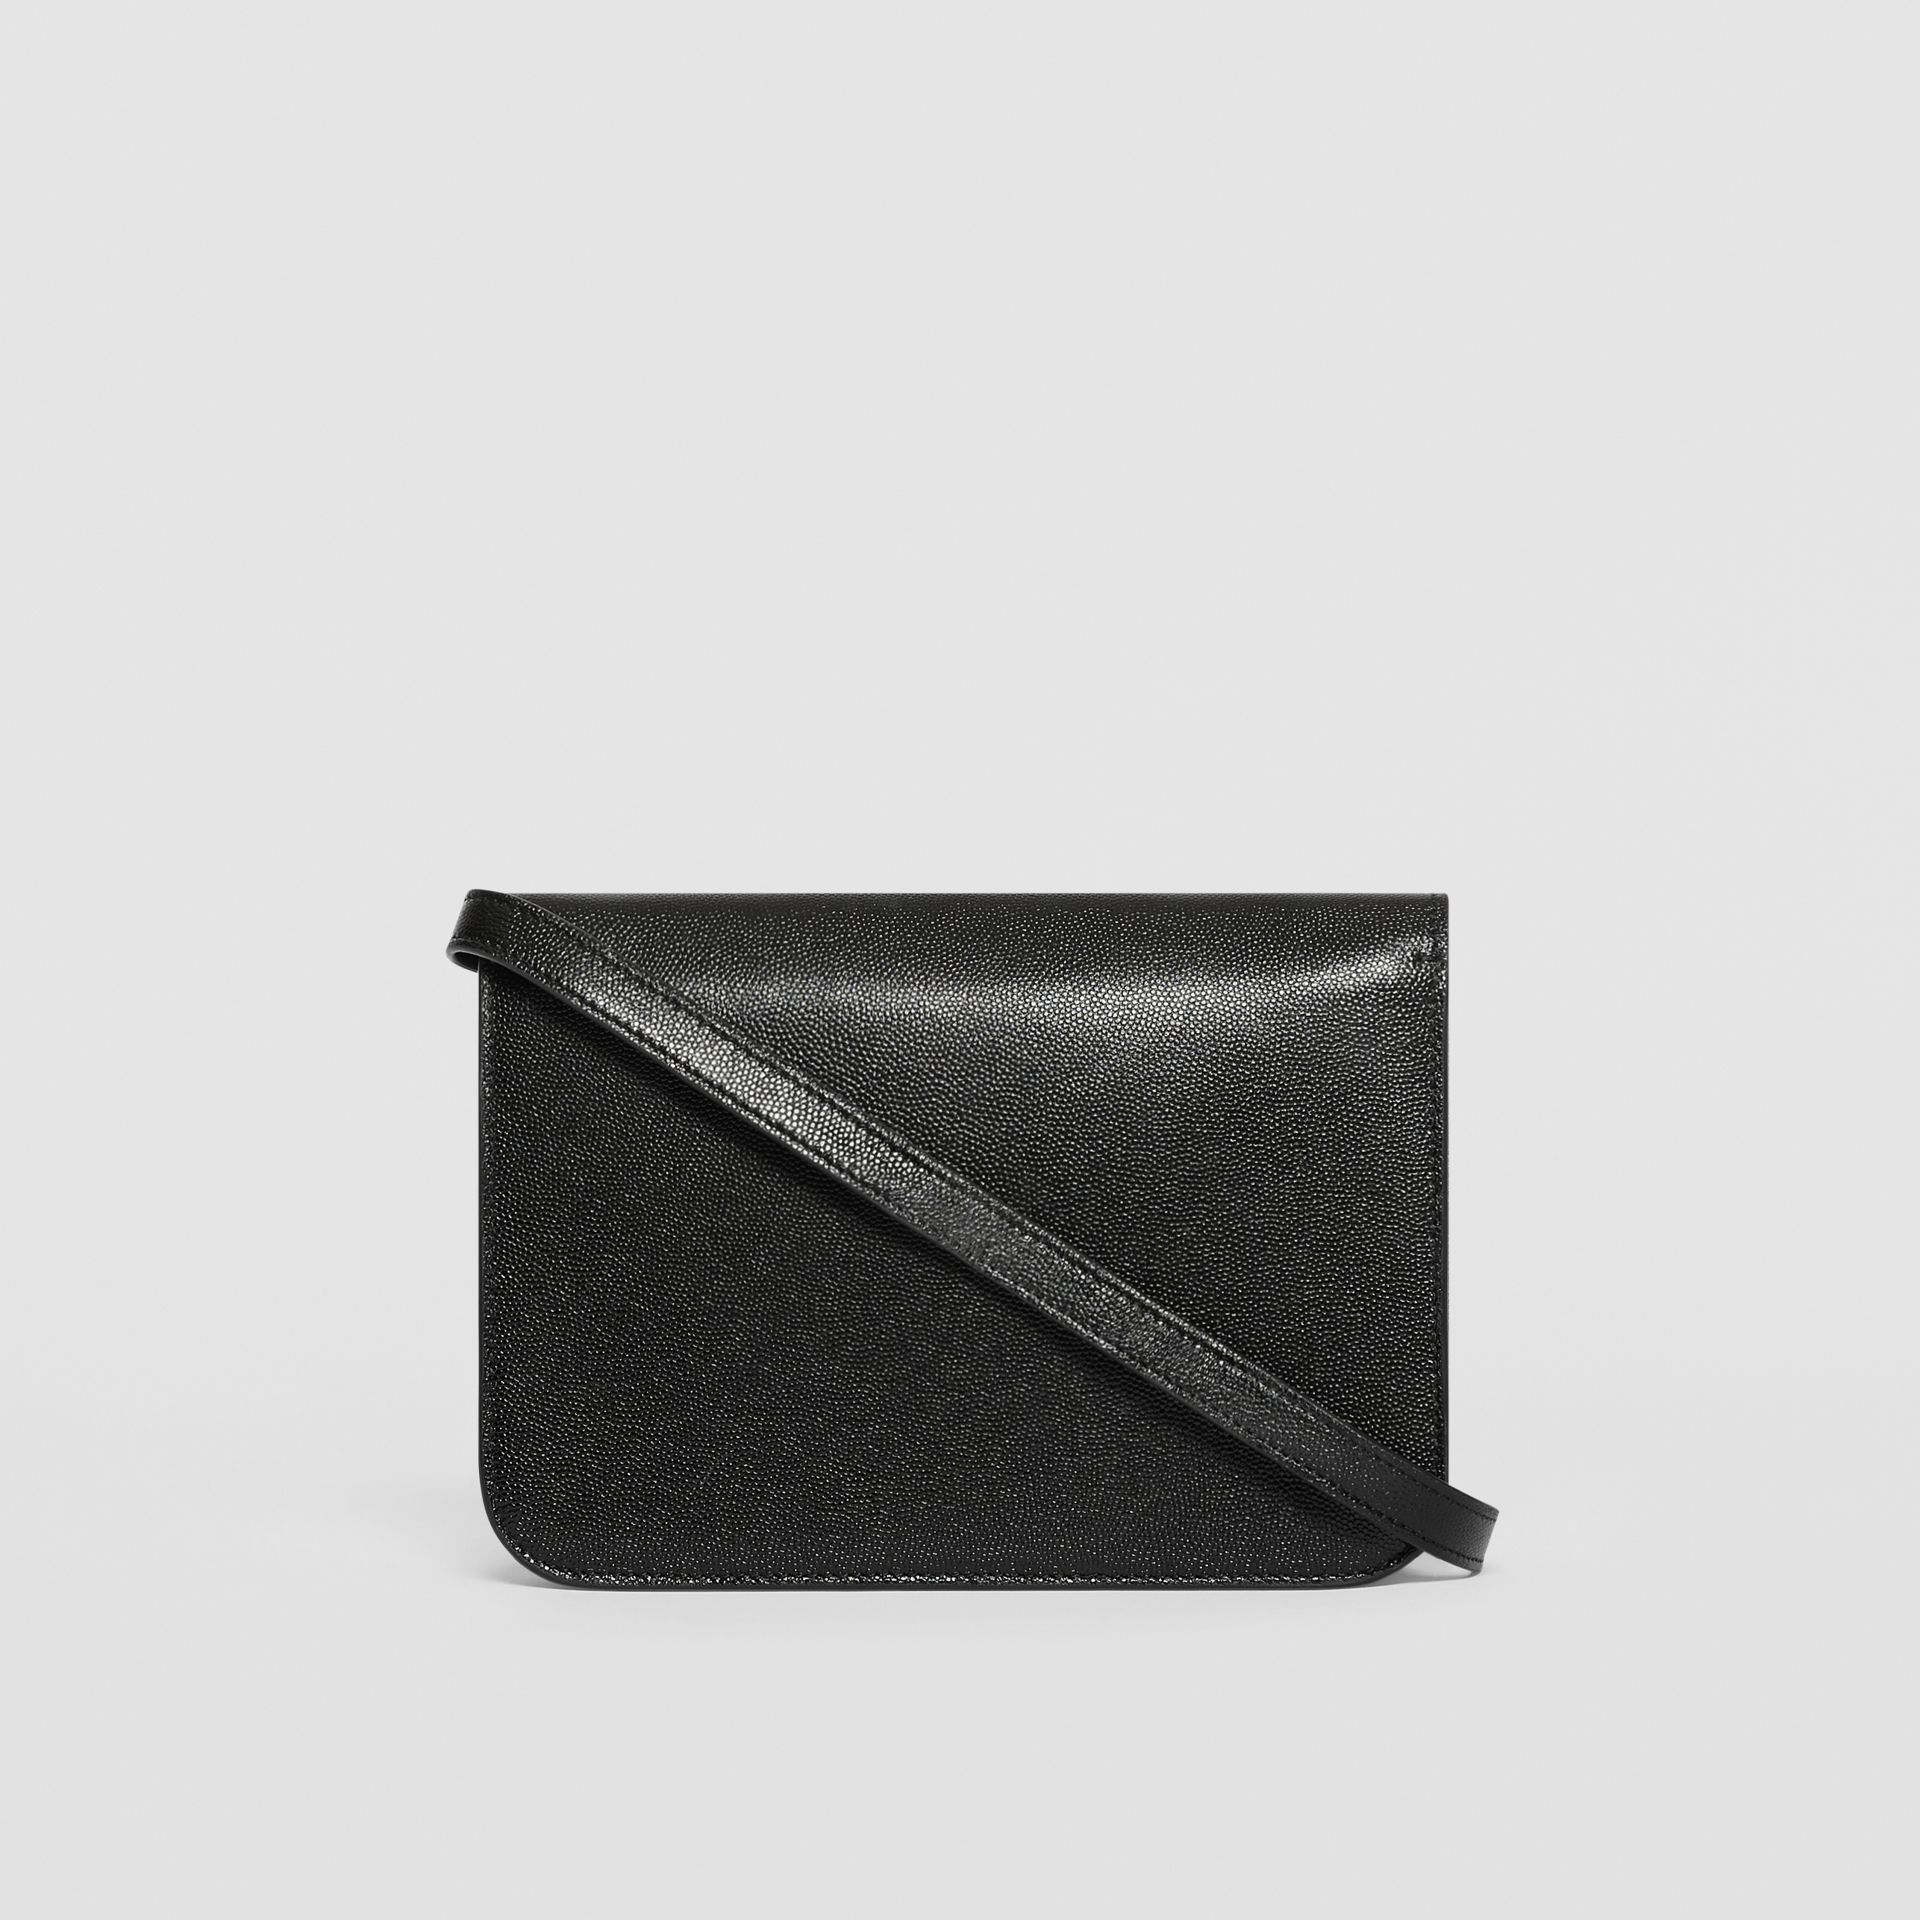 Small Grainy Leather TB Bag in Black - Women | Burberry - gallery image 7